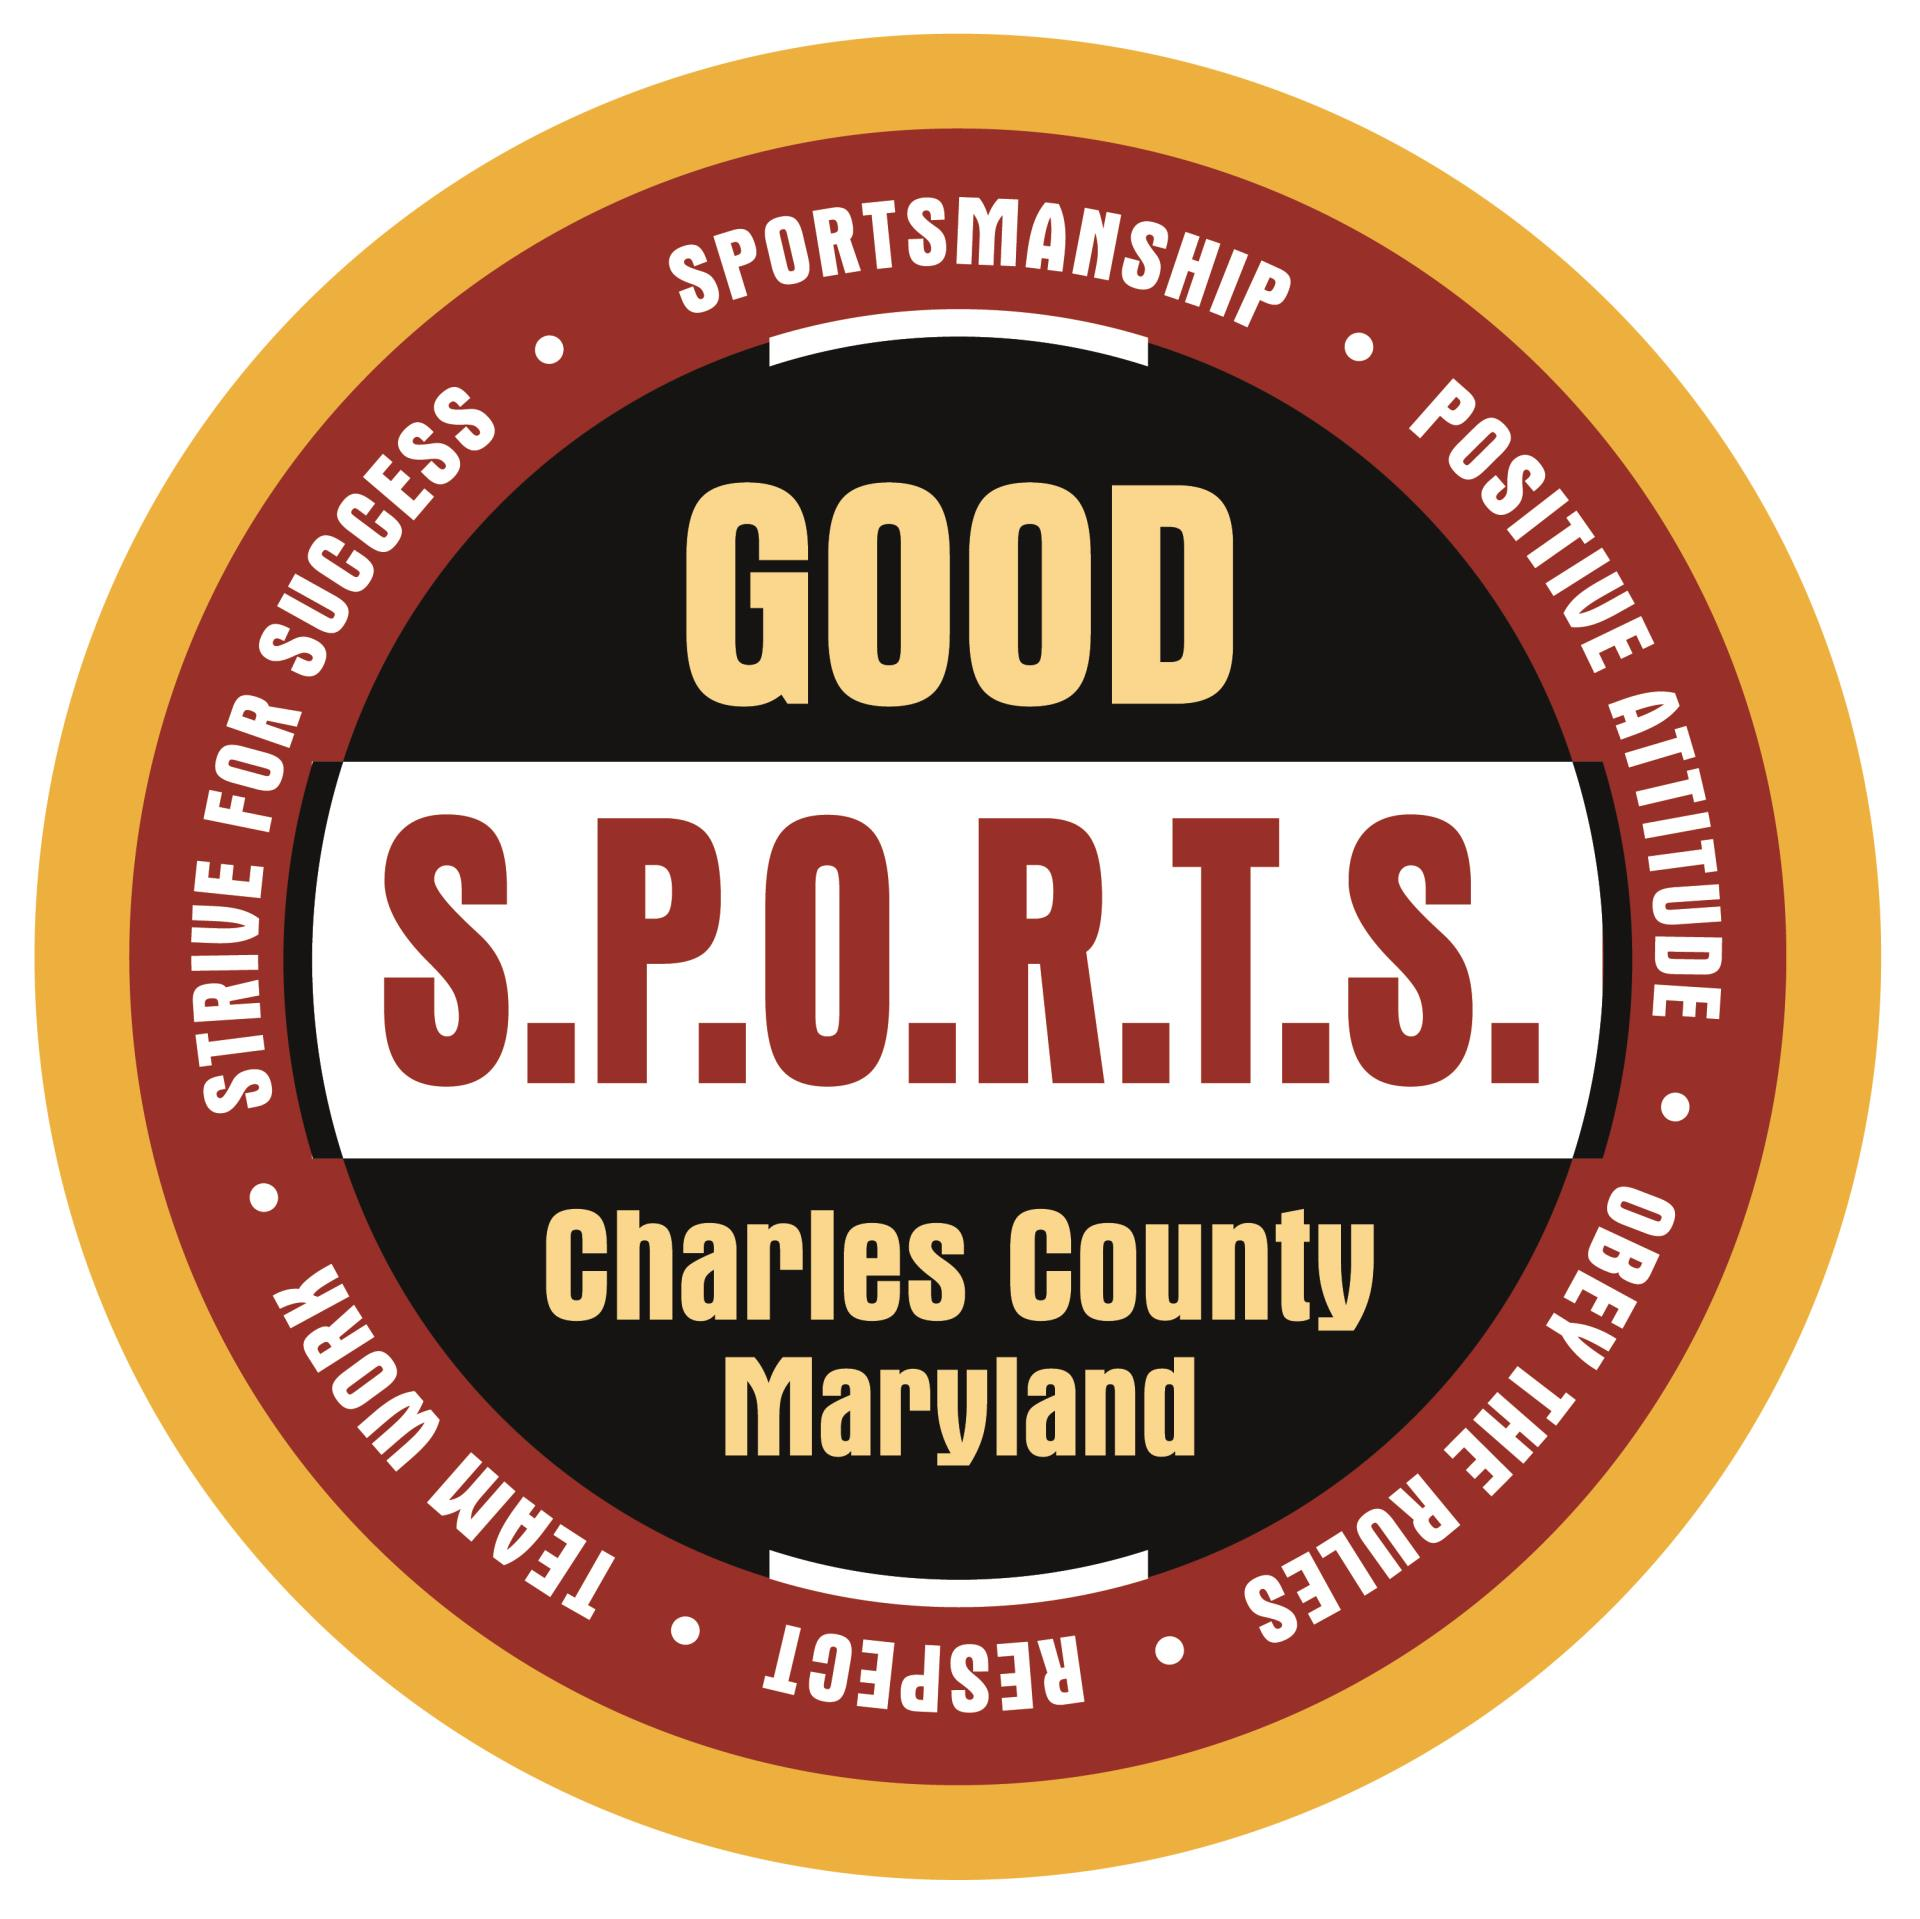 GoodSportsLogo_Color_CMYK_HighRes